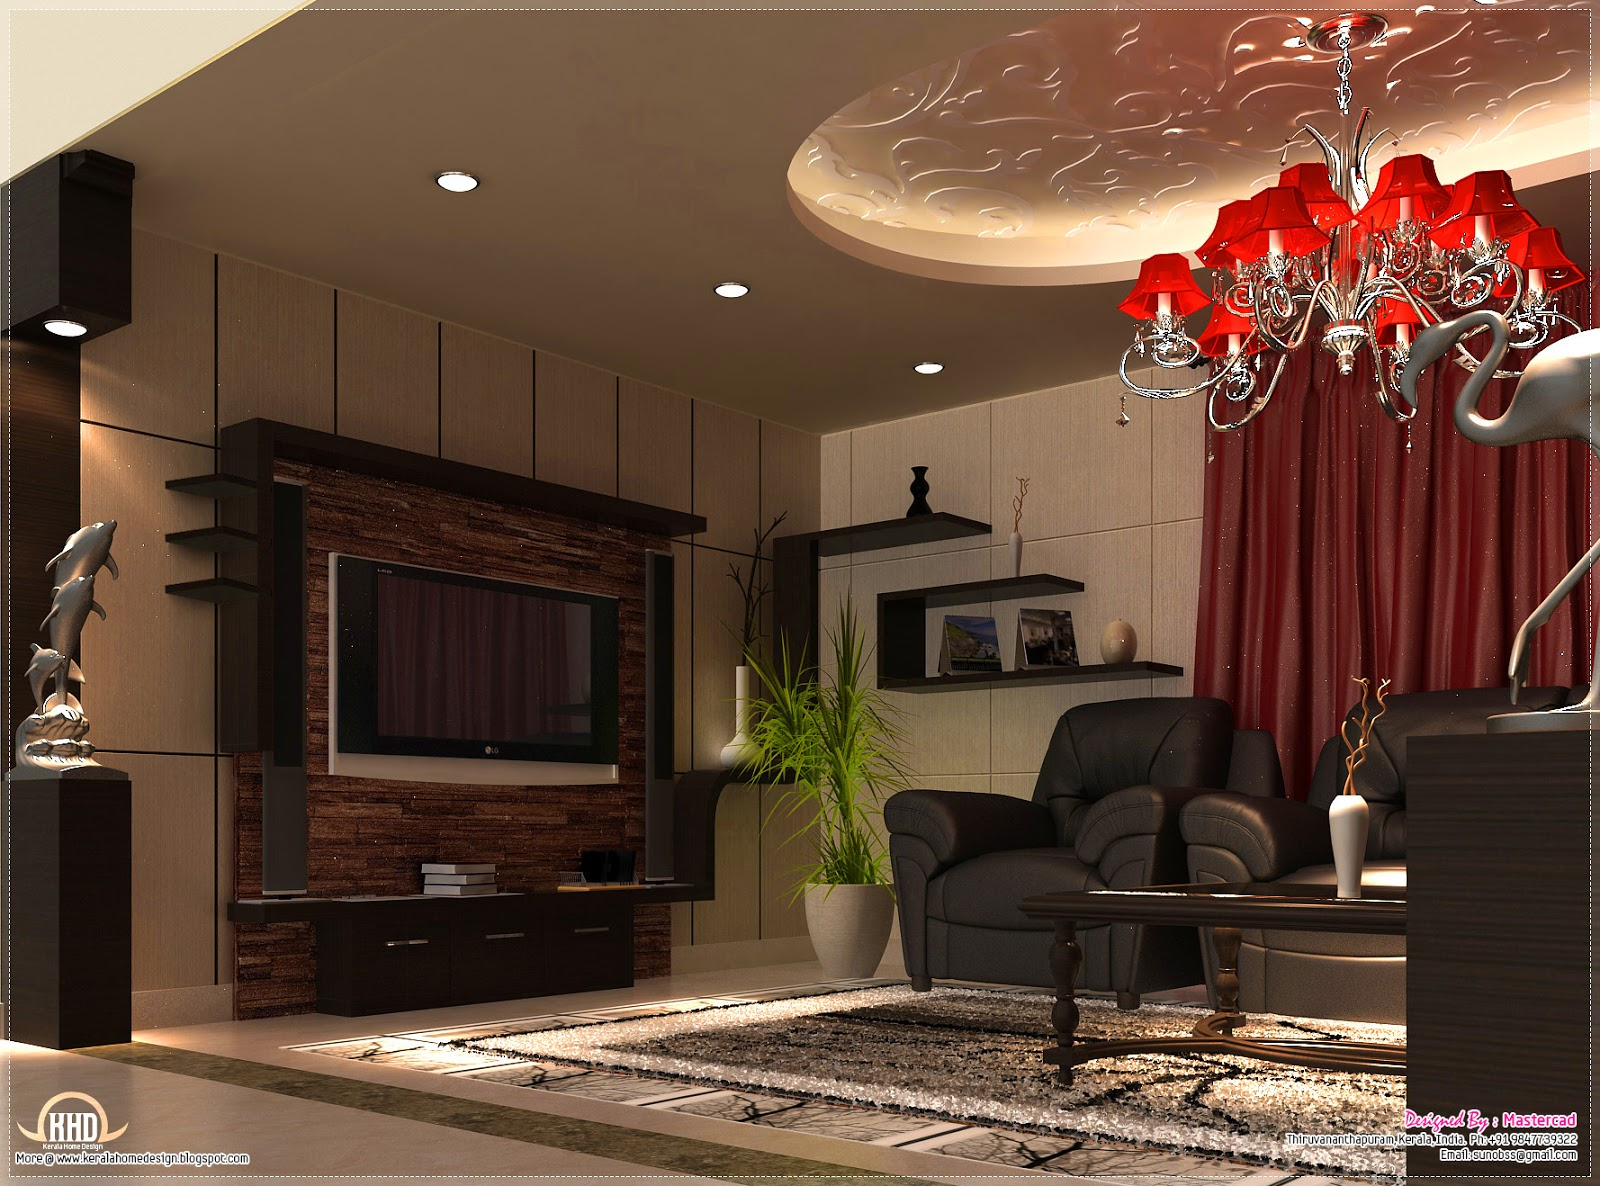 Interior Design Ideas Kerala Home Design And Floor Plans